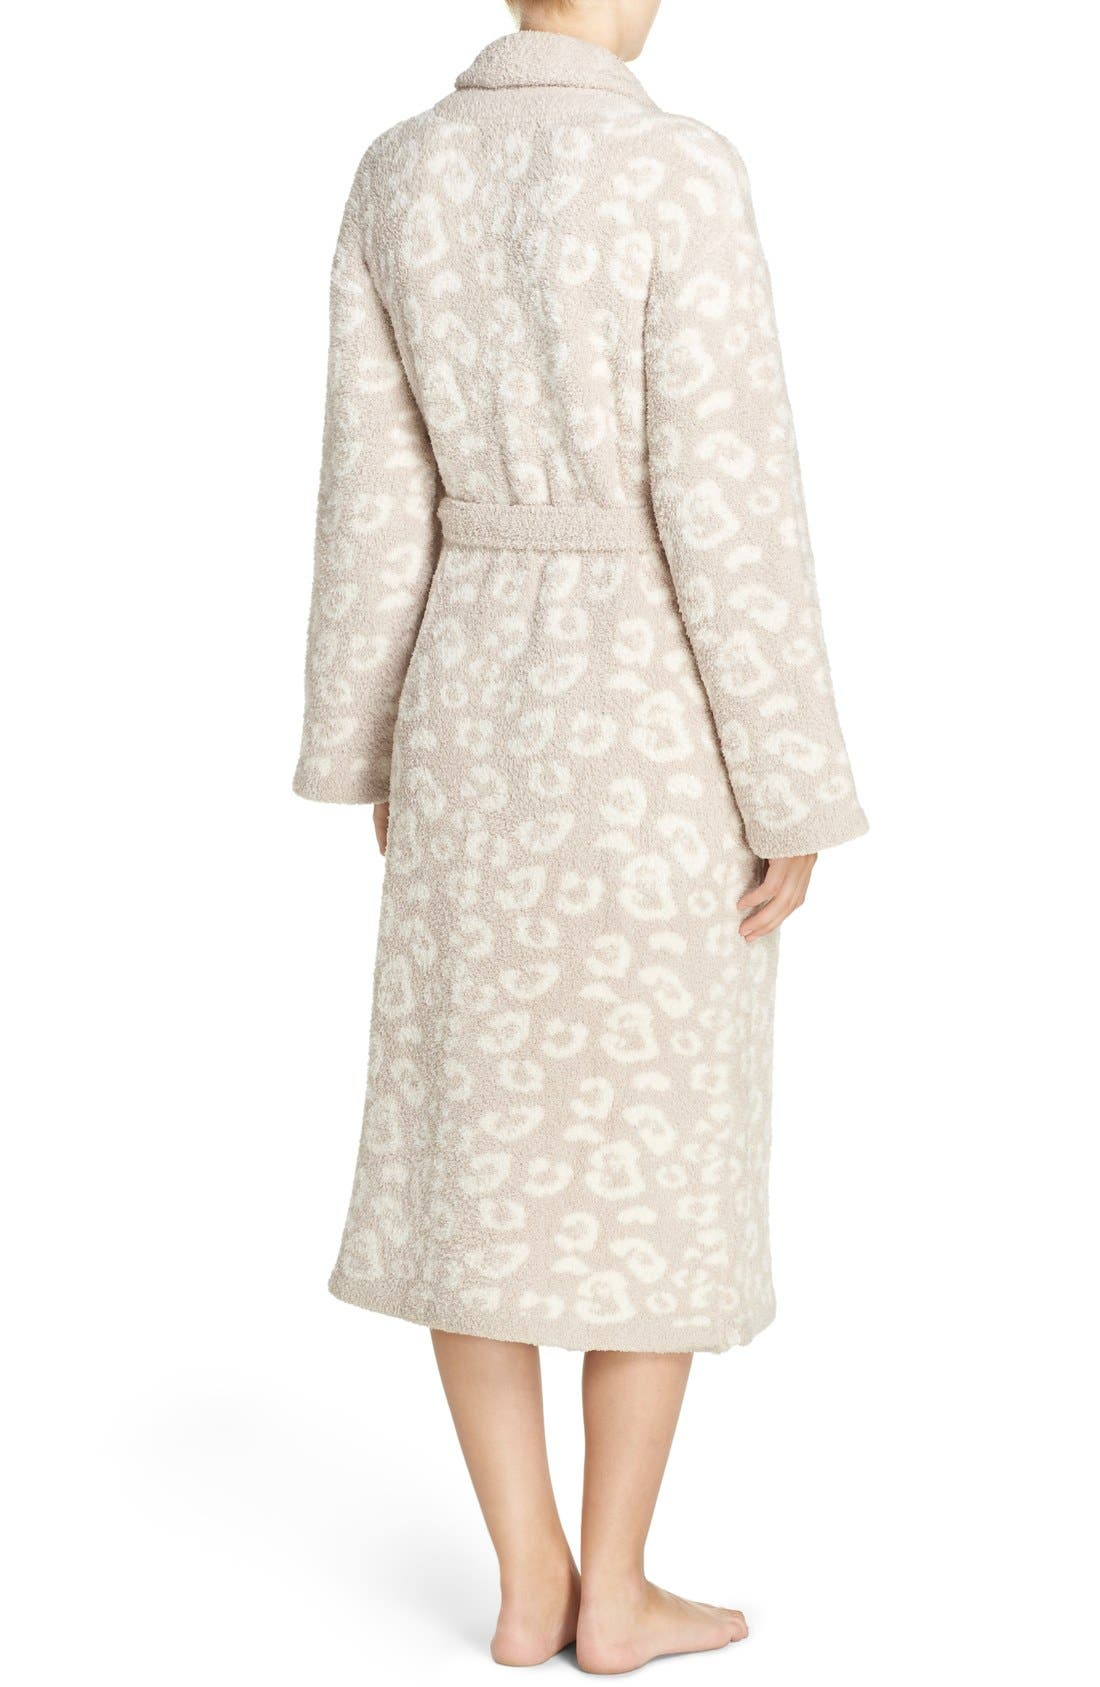 CozyChic<sup>®</sup> Robe,                             Alternate thumbnail 2, color,                             262